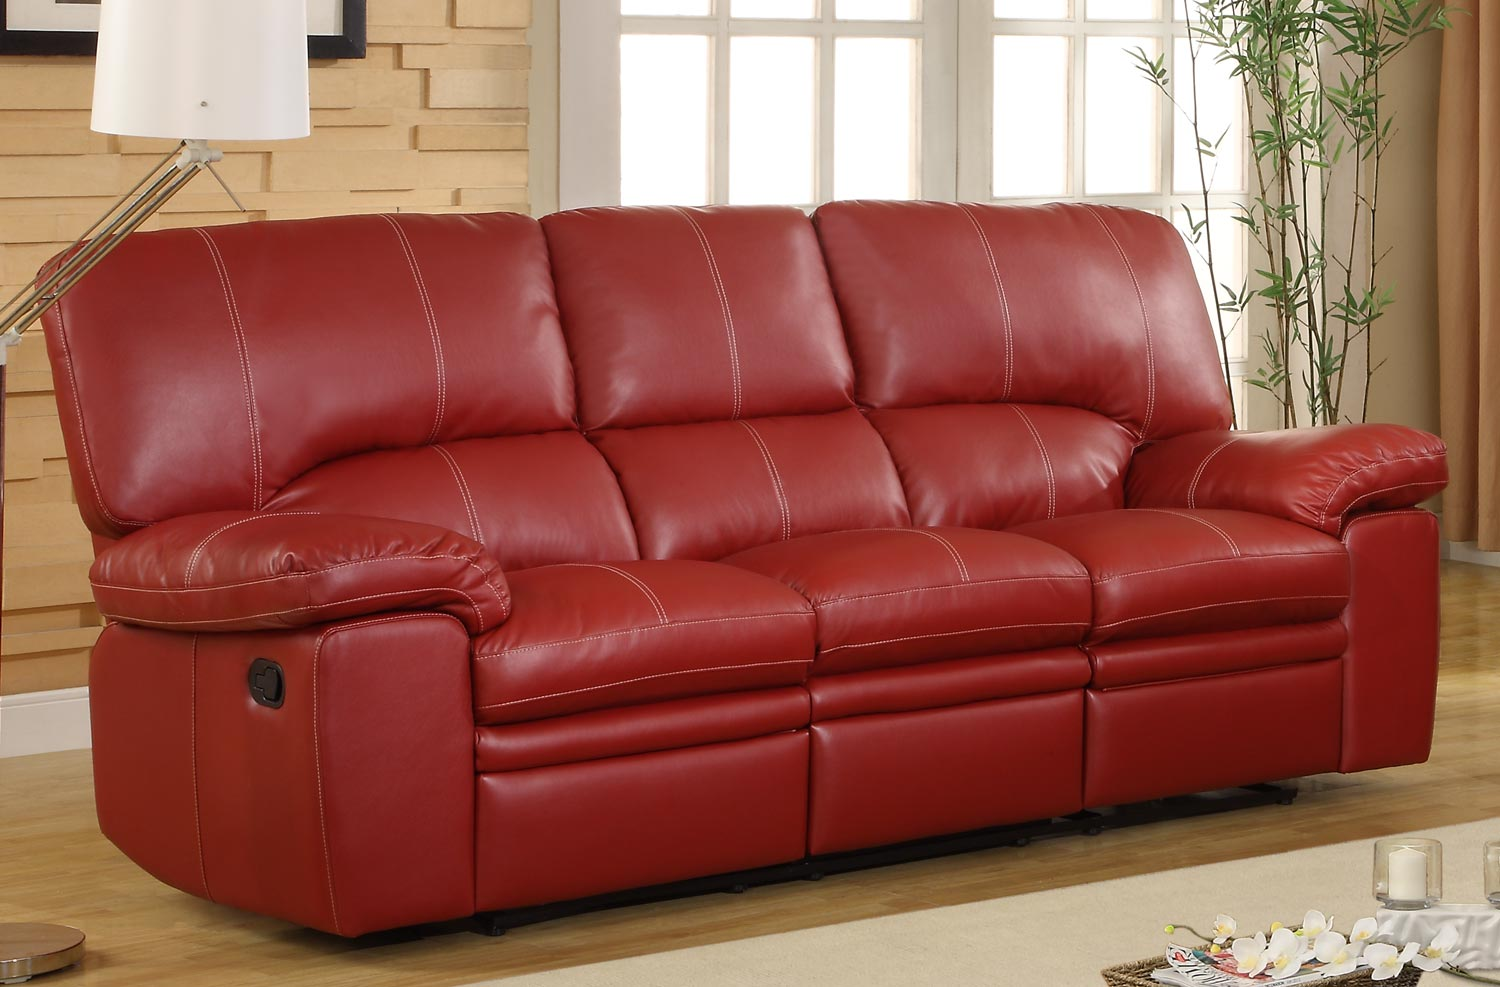 Homelegance Kendrick Double Recliner Sofa Red Bonded Leather Match